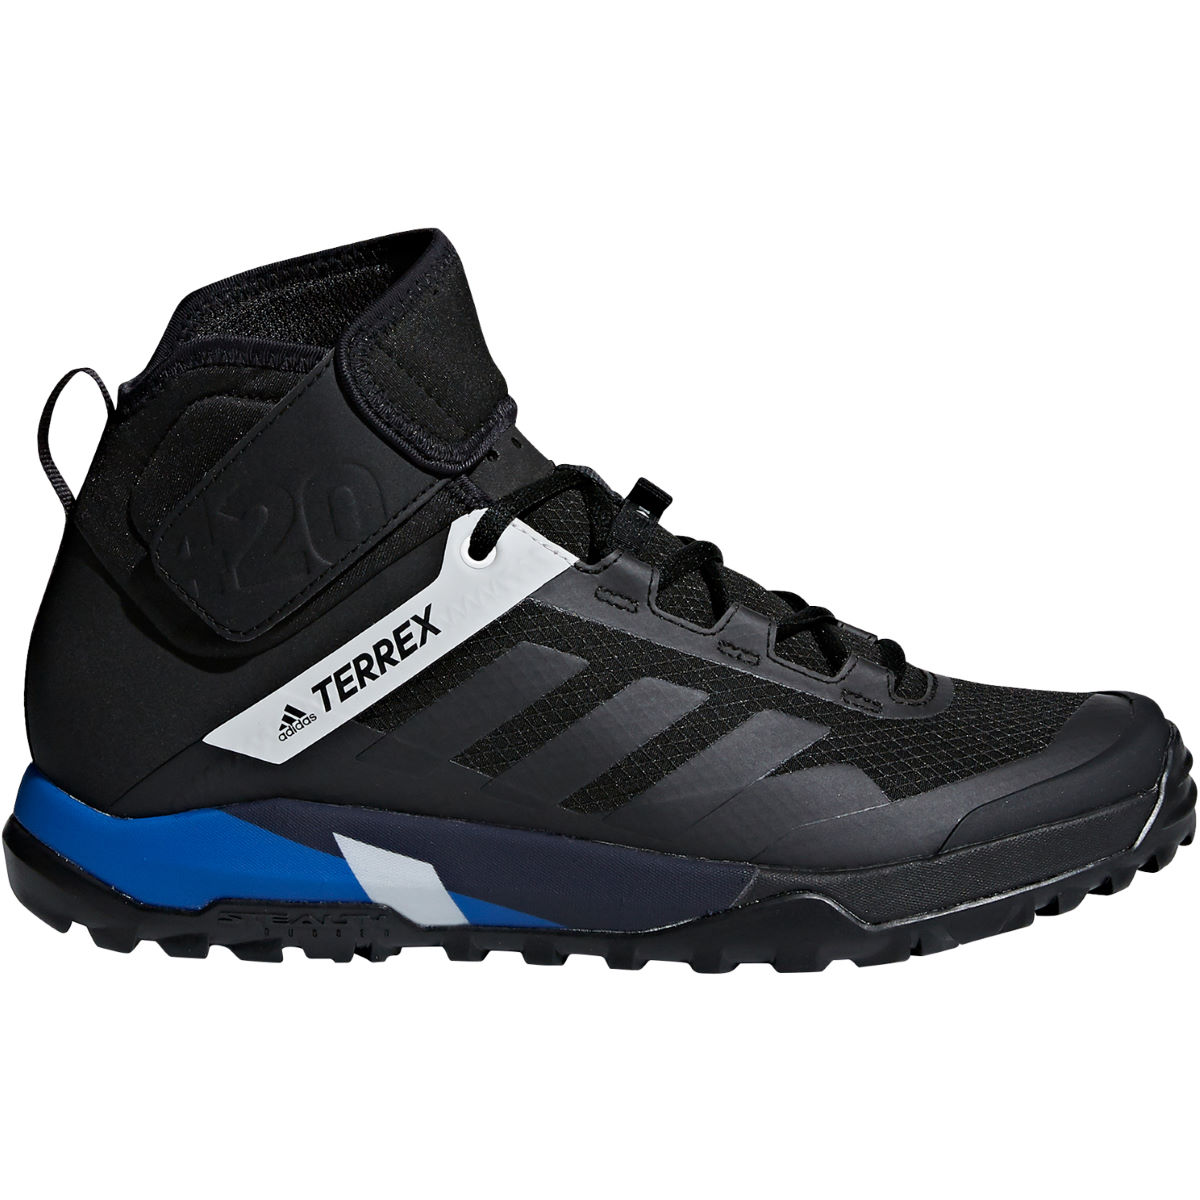 Chaussures adidas Terrex Trail Cross Protect - 7 Chaussures VTT